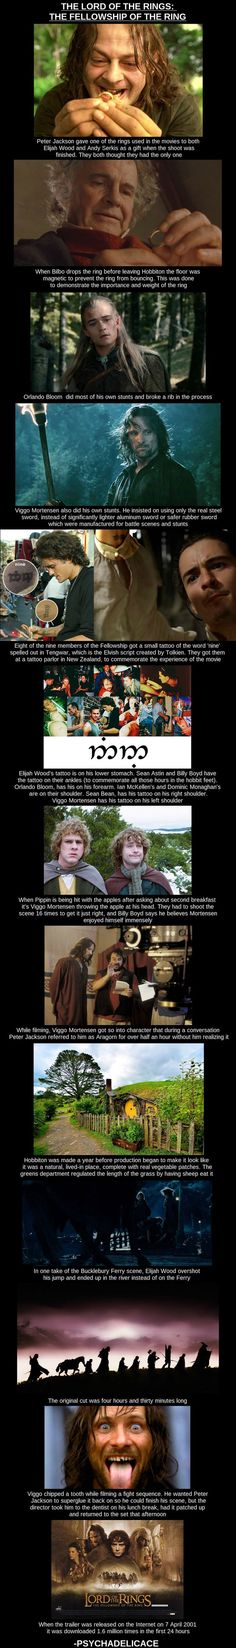 The Fellowship Of The Ring fun facts.  Ironically, I'm listening to the soundtrack right now.: